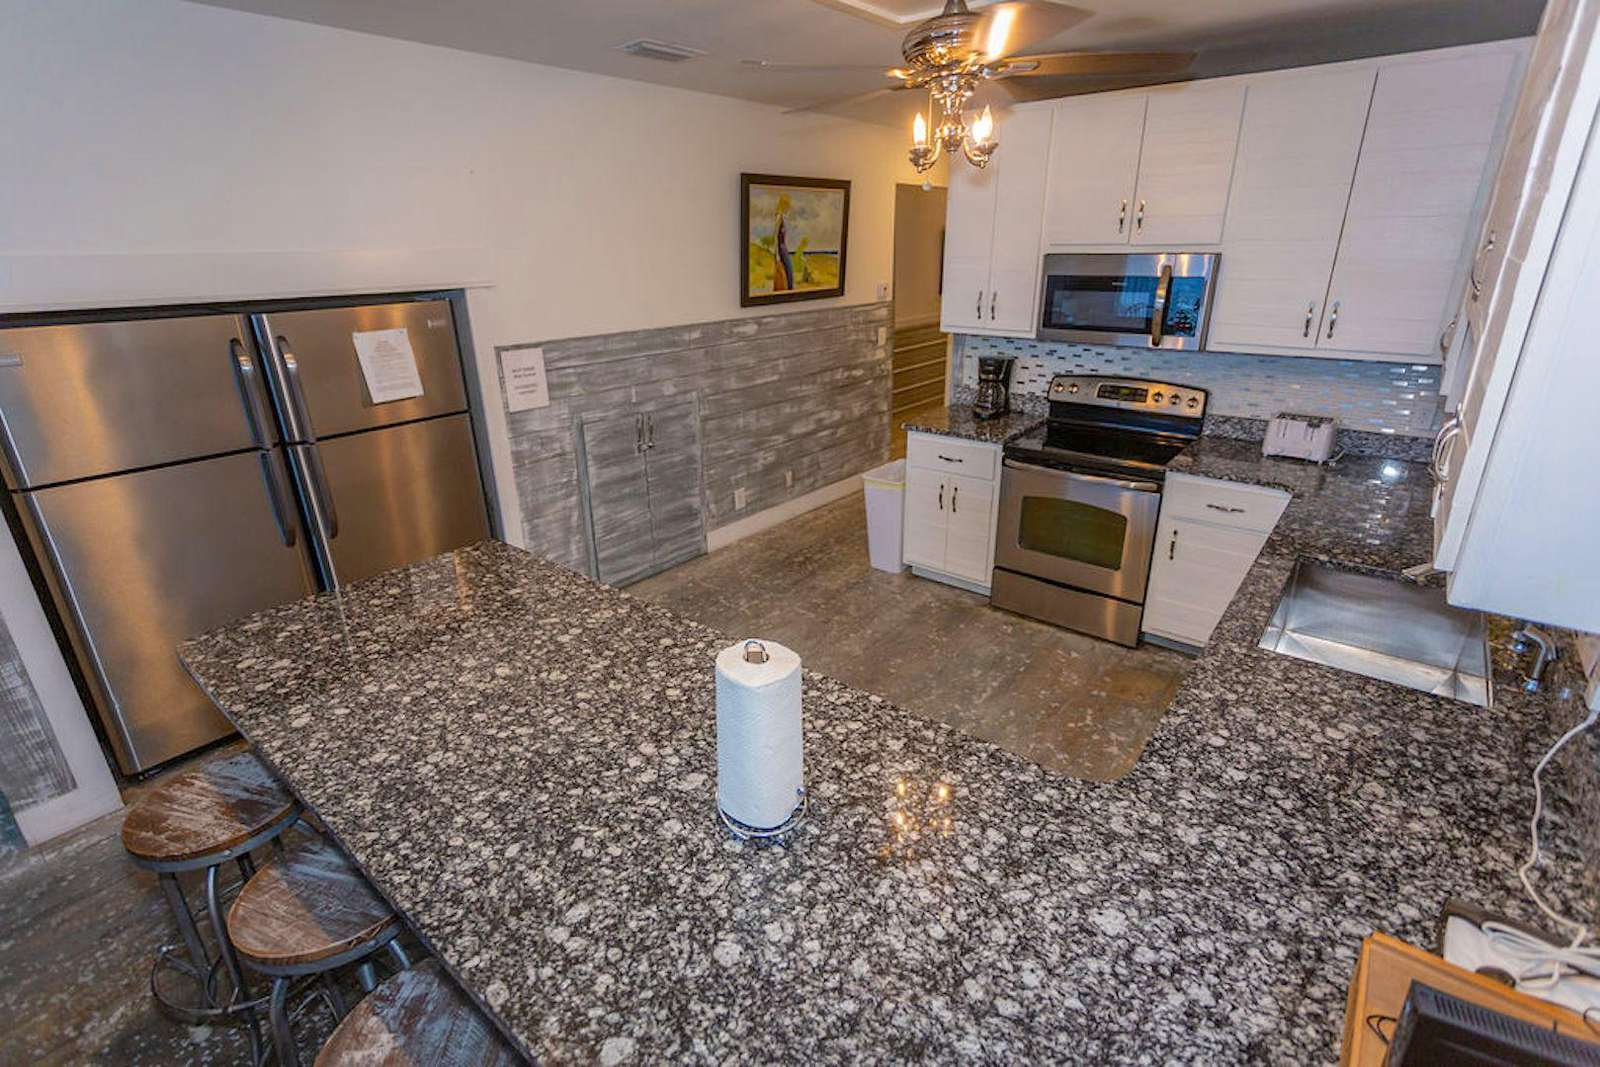 Fully stocked kitchen with 2 large refrigerators